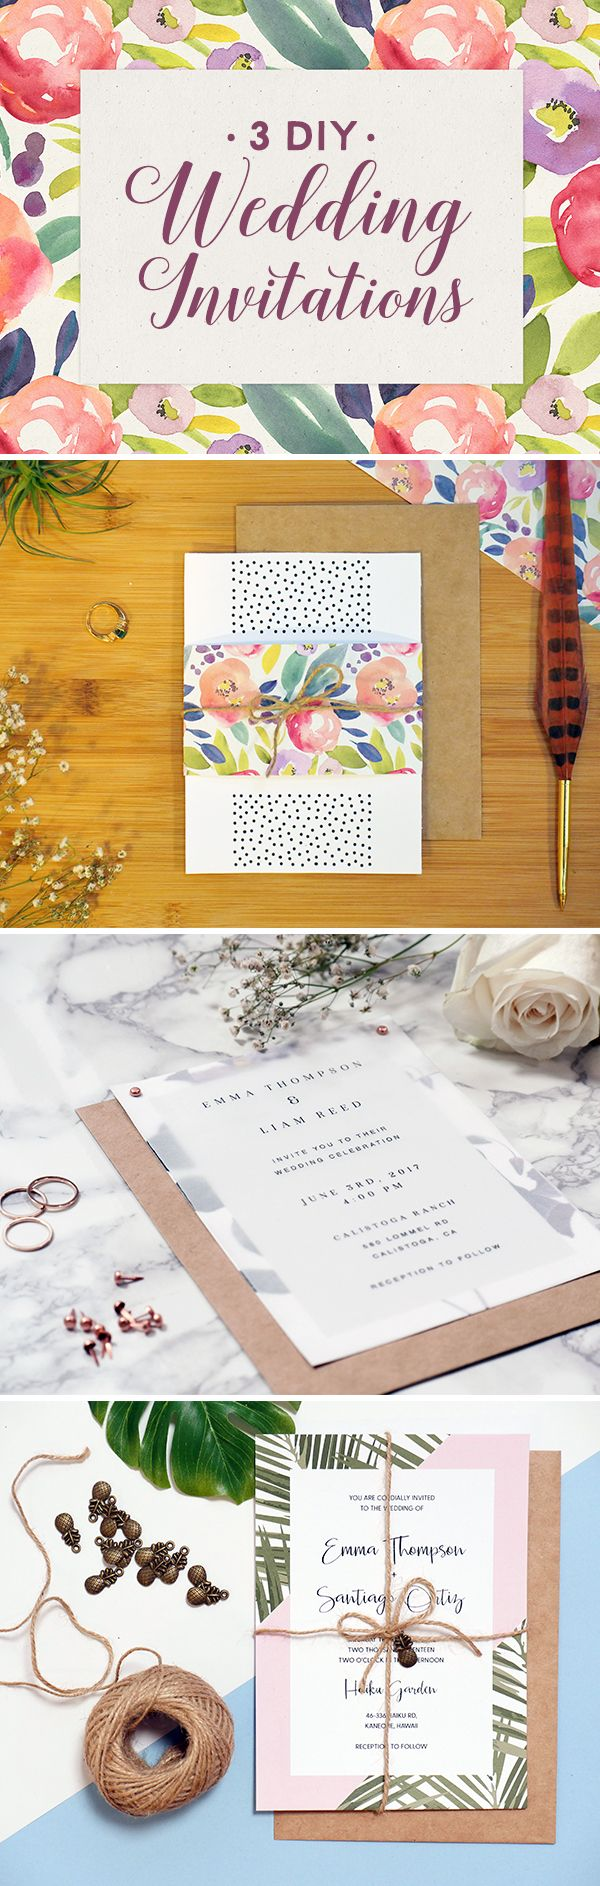 3 DIY Wedding Invitations That Are Unique